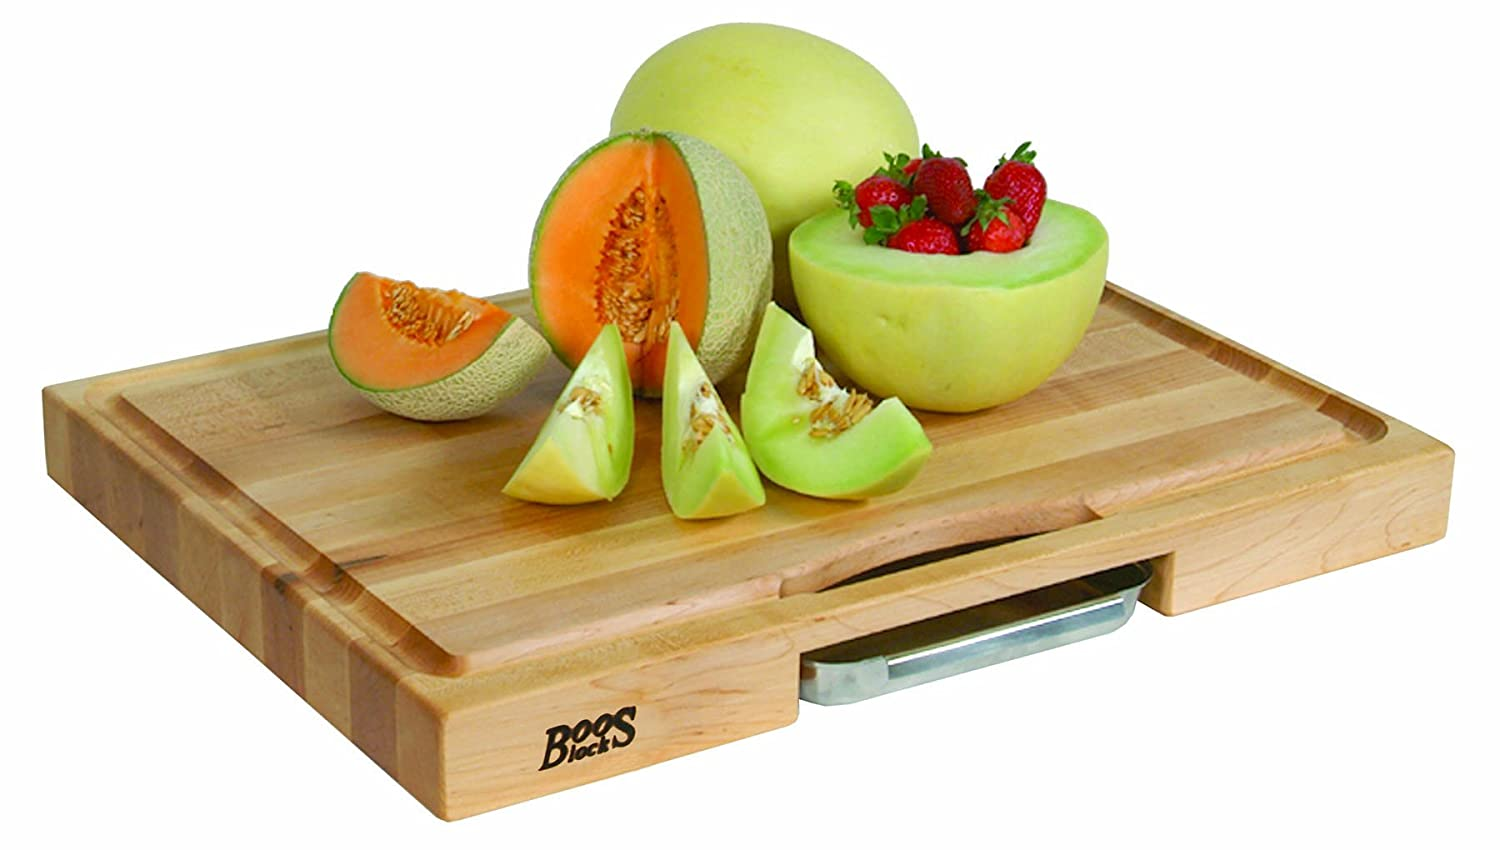 amazoncom john boos newton prep master maple wood reversible cutting board with juice groove and pan 24 inches x 18 inches x 225 inches kitchen u0026